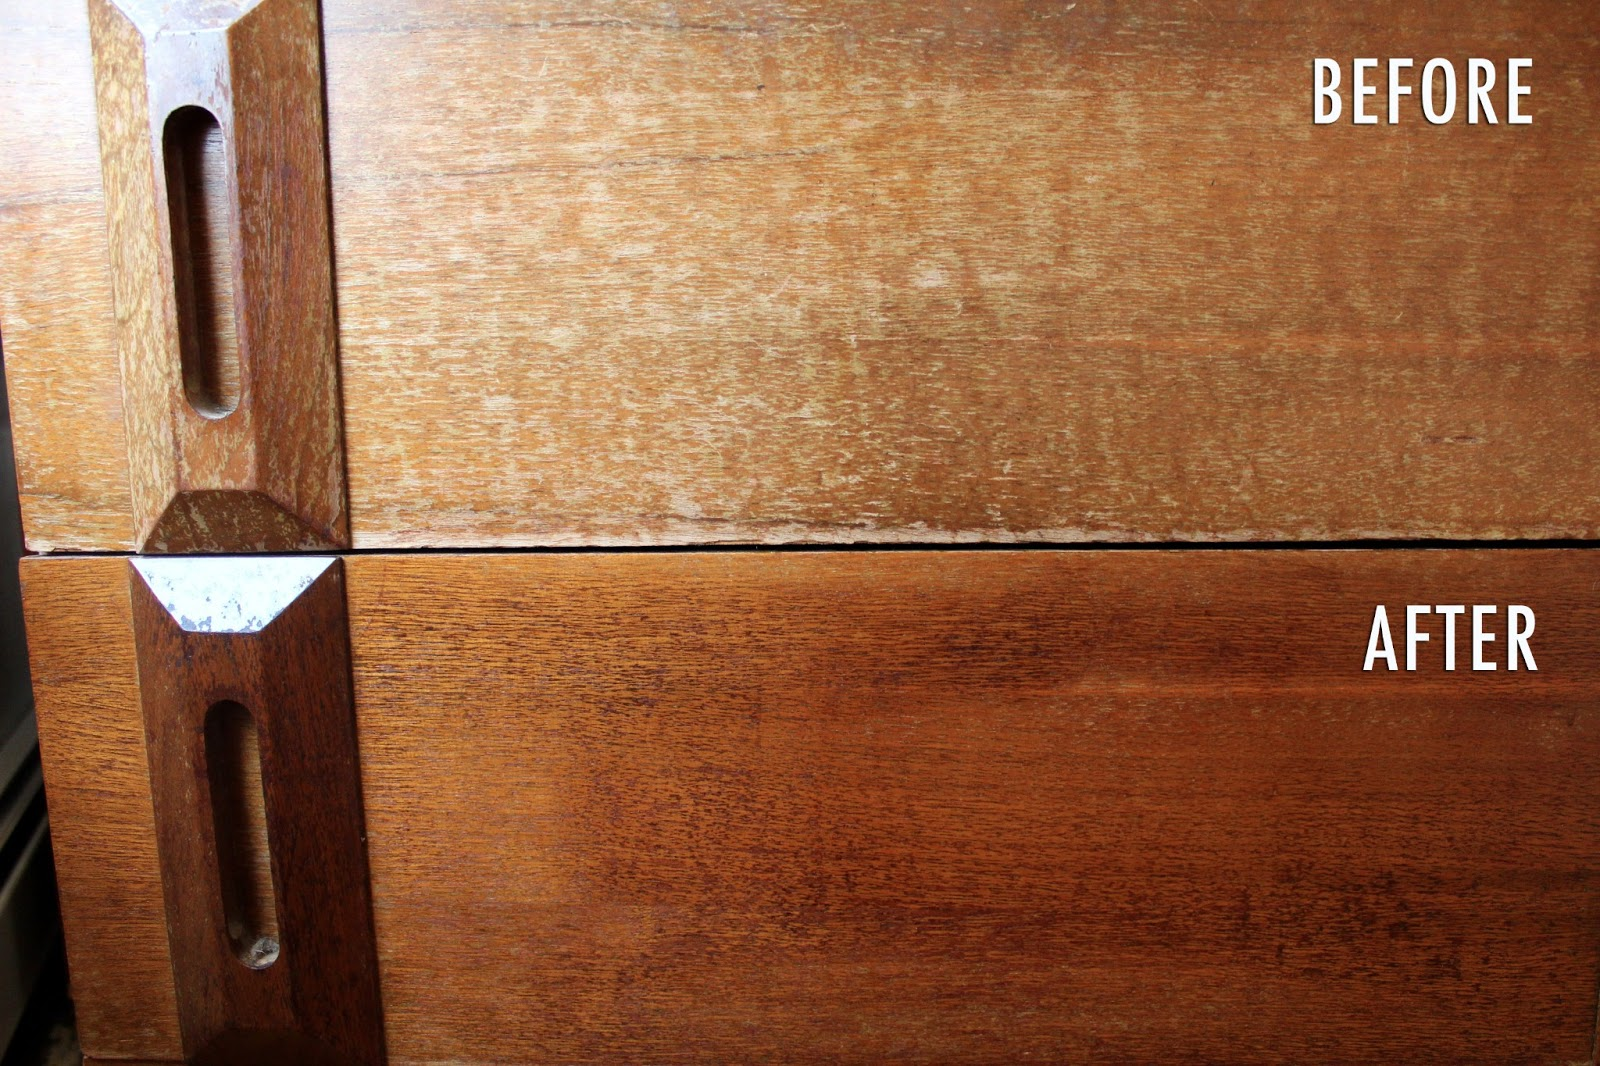 10 tips about caring for wooden furniture